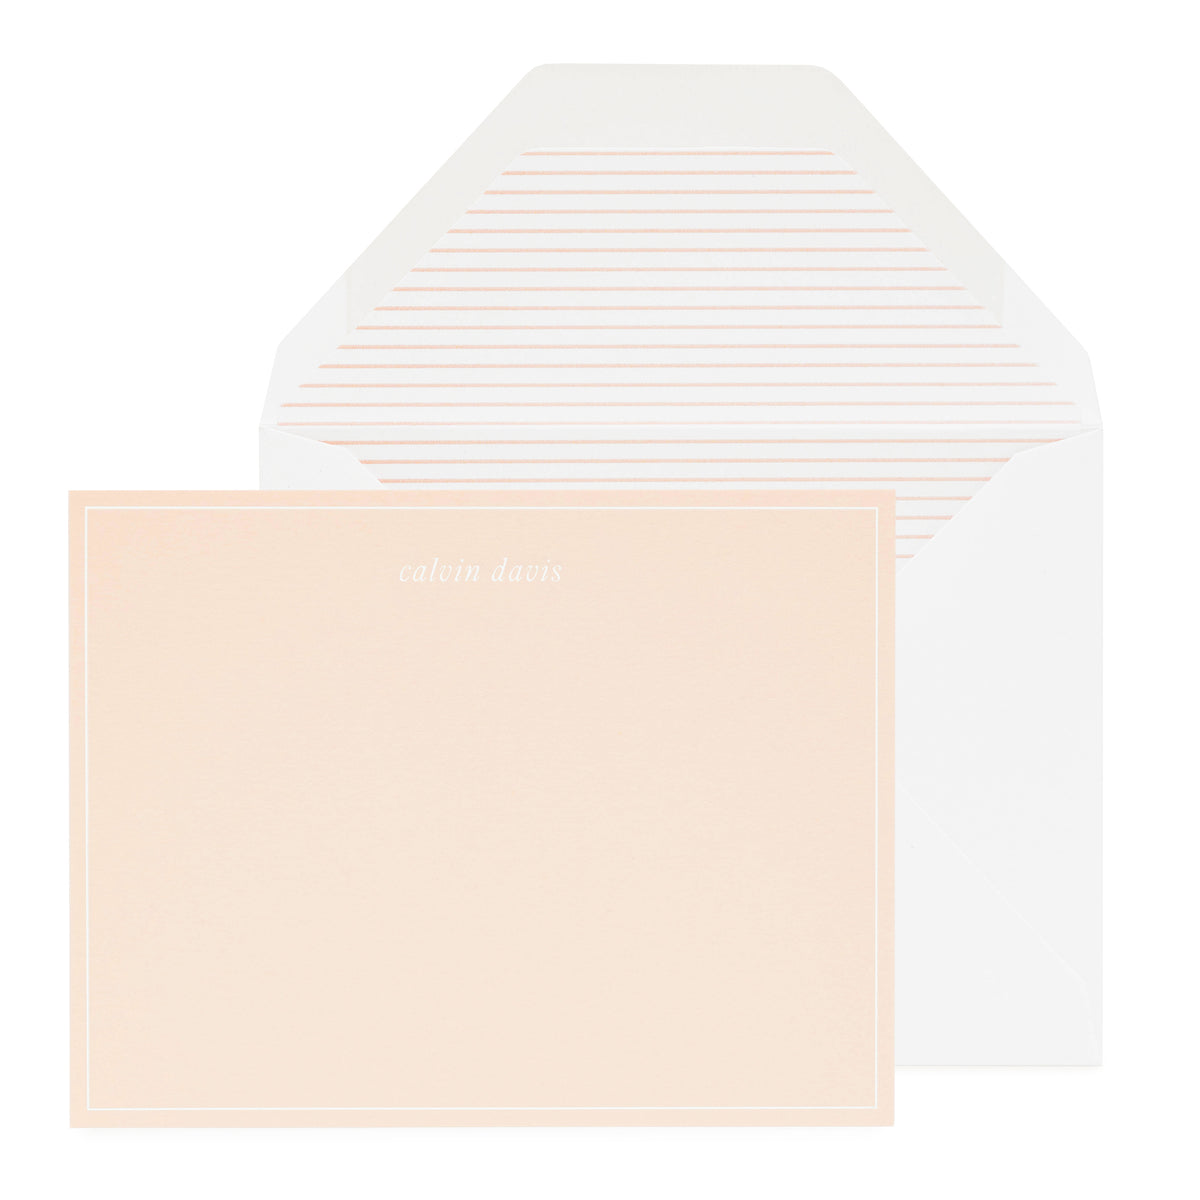 Pale pink personalized stationery set with pink striped liner